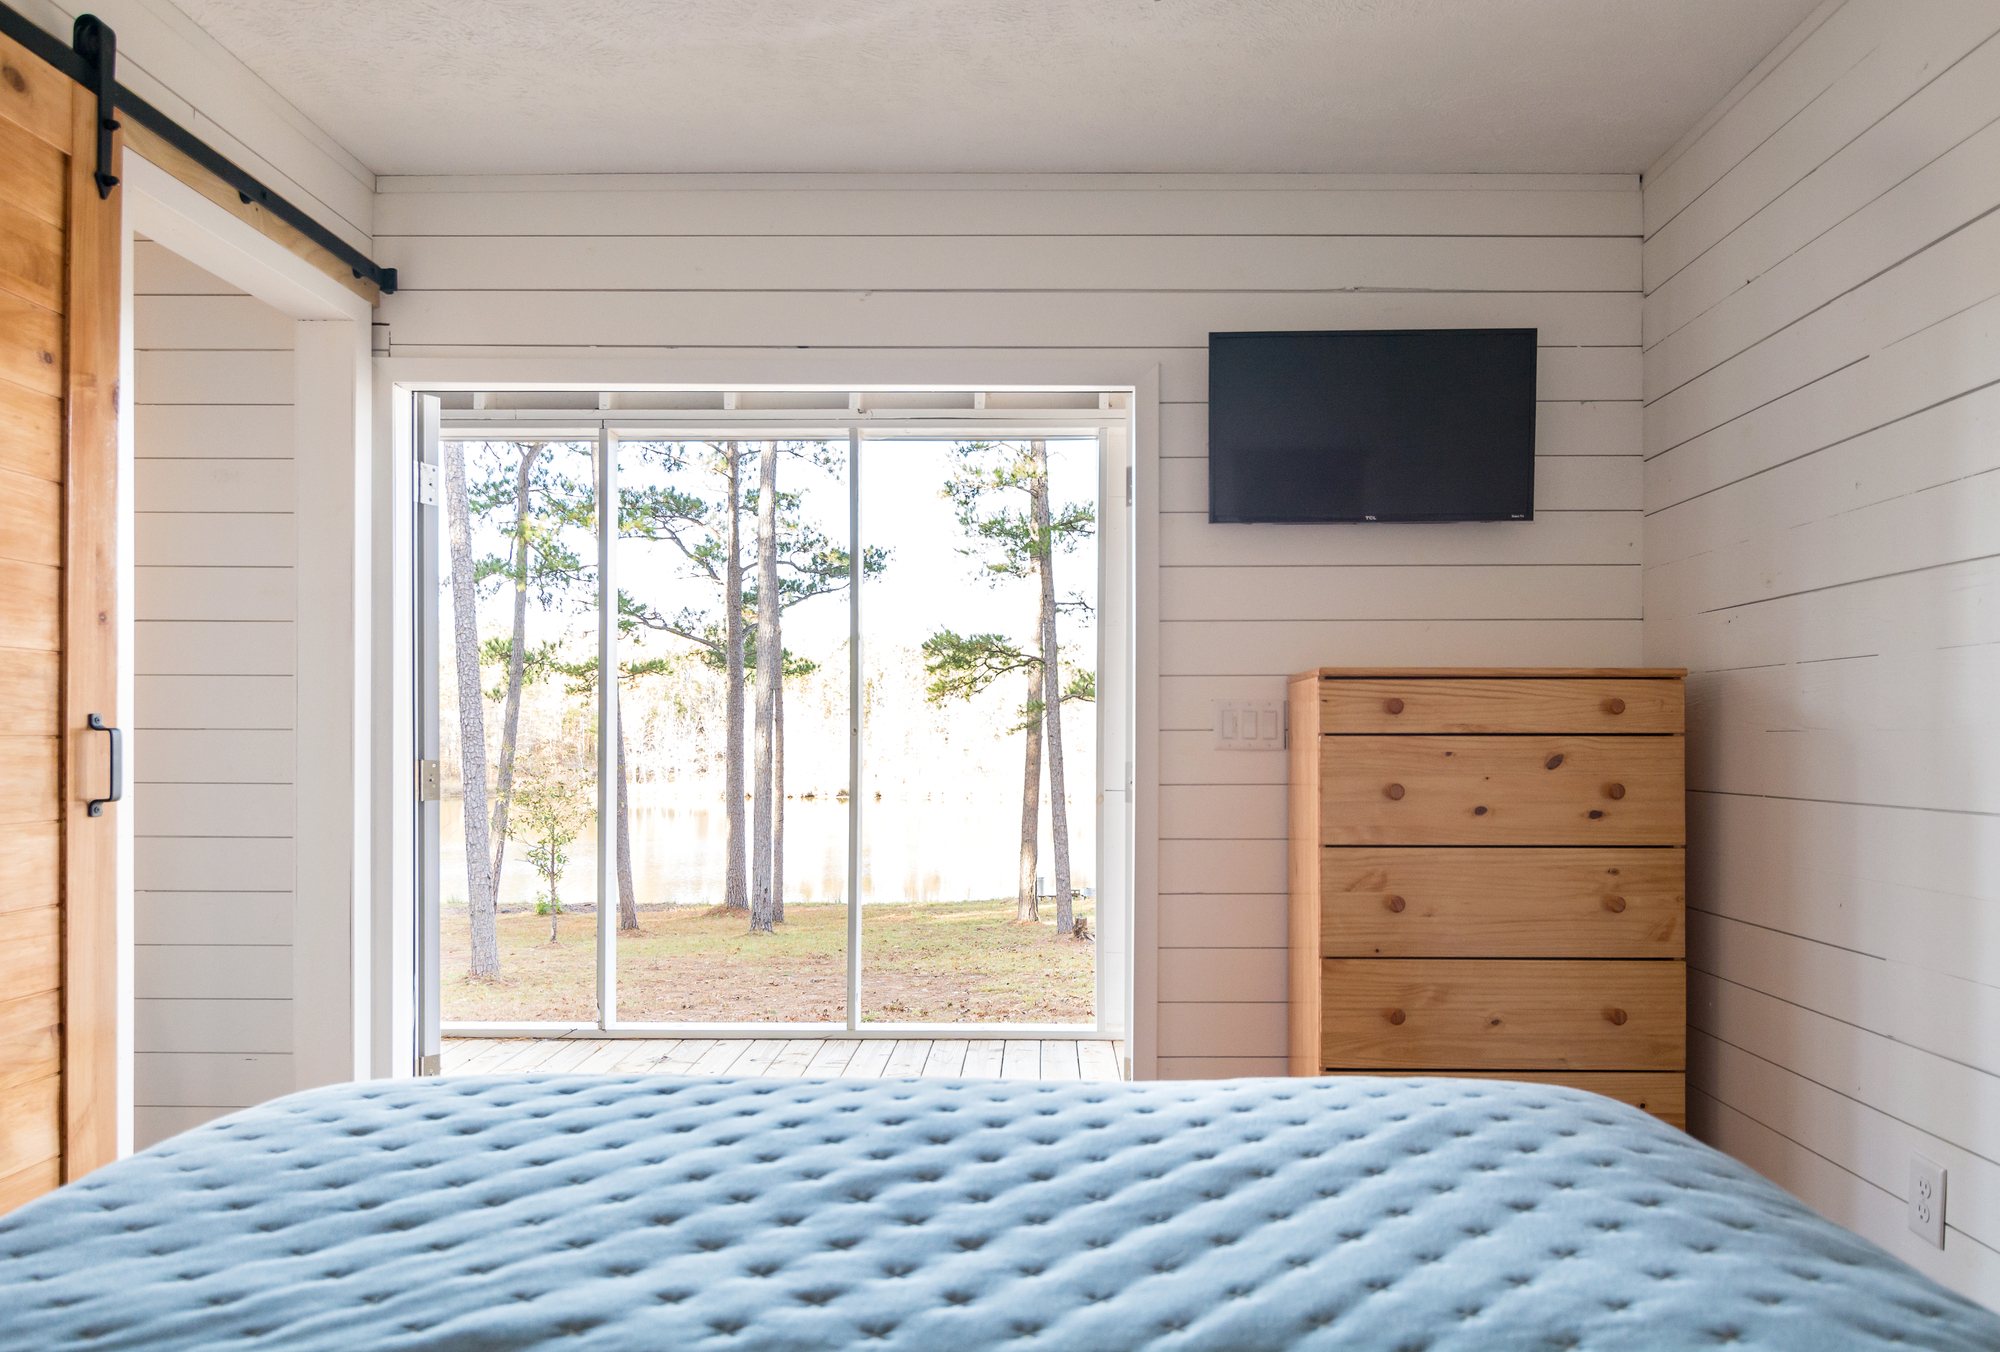 Bedroom of the tiny house with a wonderful view of the woods